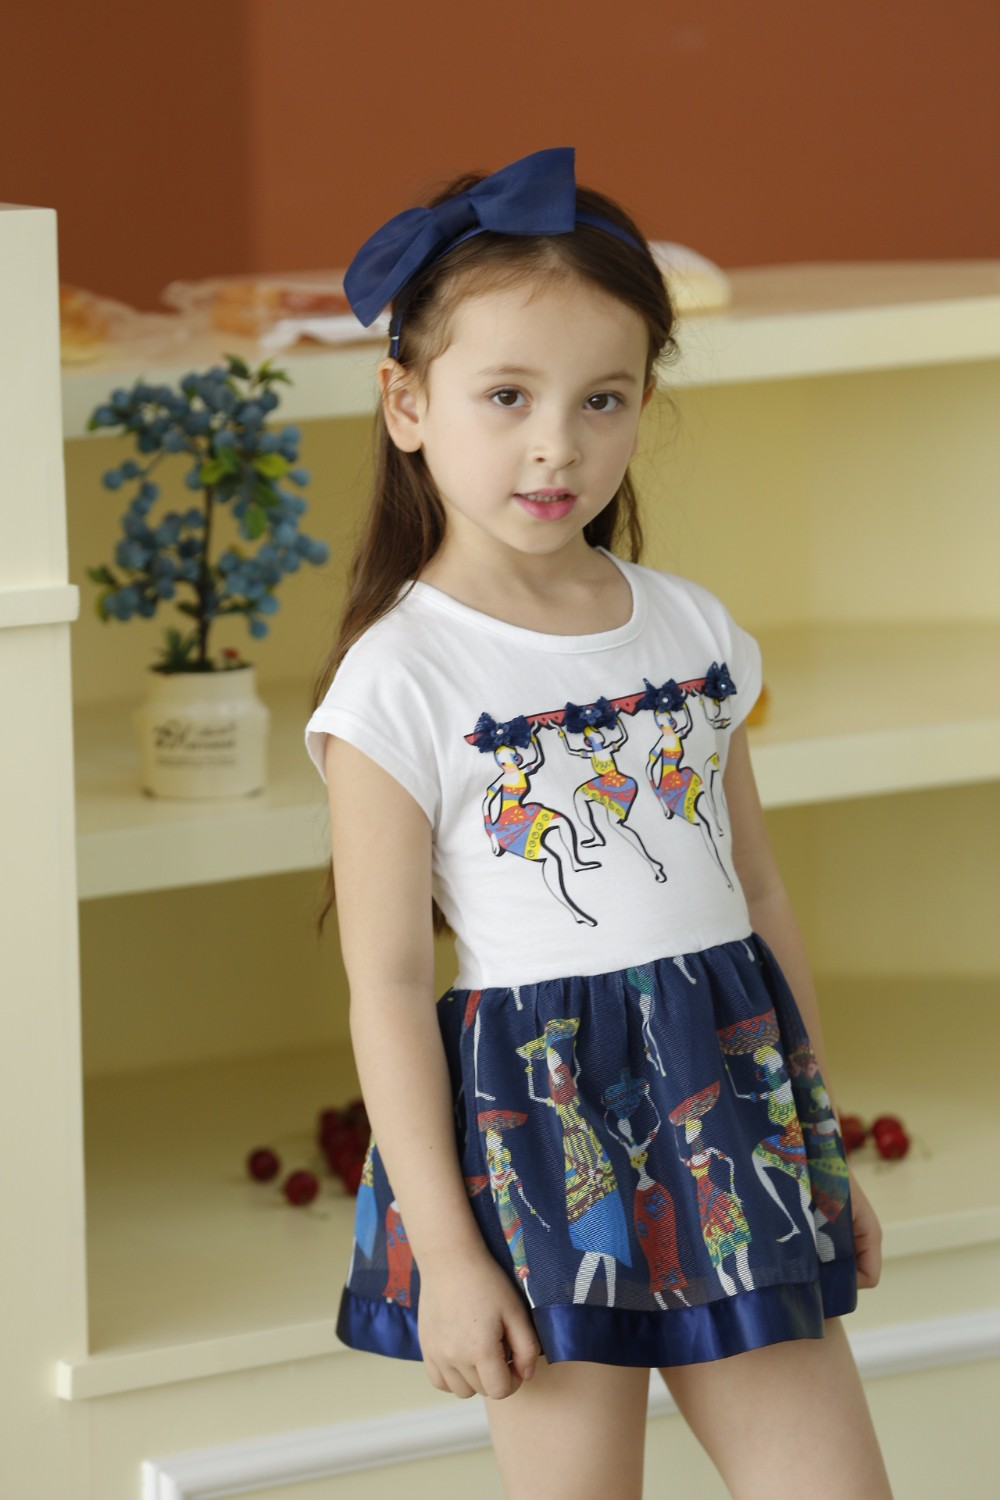 Save Money on the Latest Kids Fashions In today's society, kids want to look and feel fashionable, but it can become expensive in a hurry. At neo-craft.gq, we carry the most fashionable kid's items at .